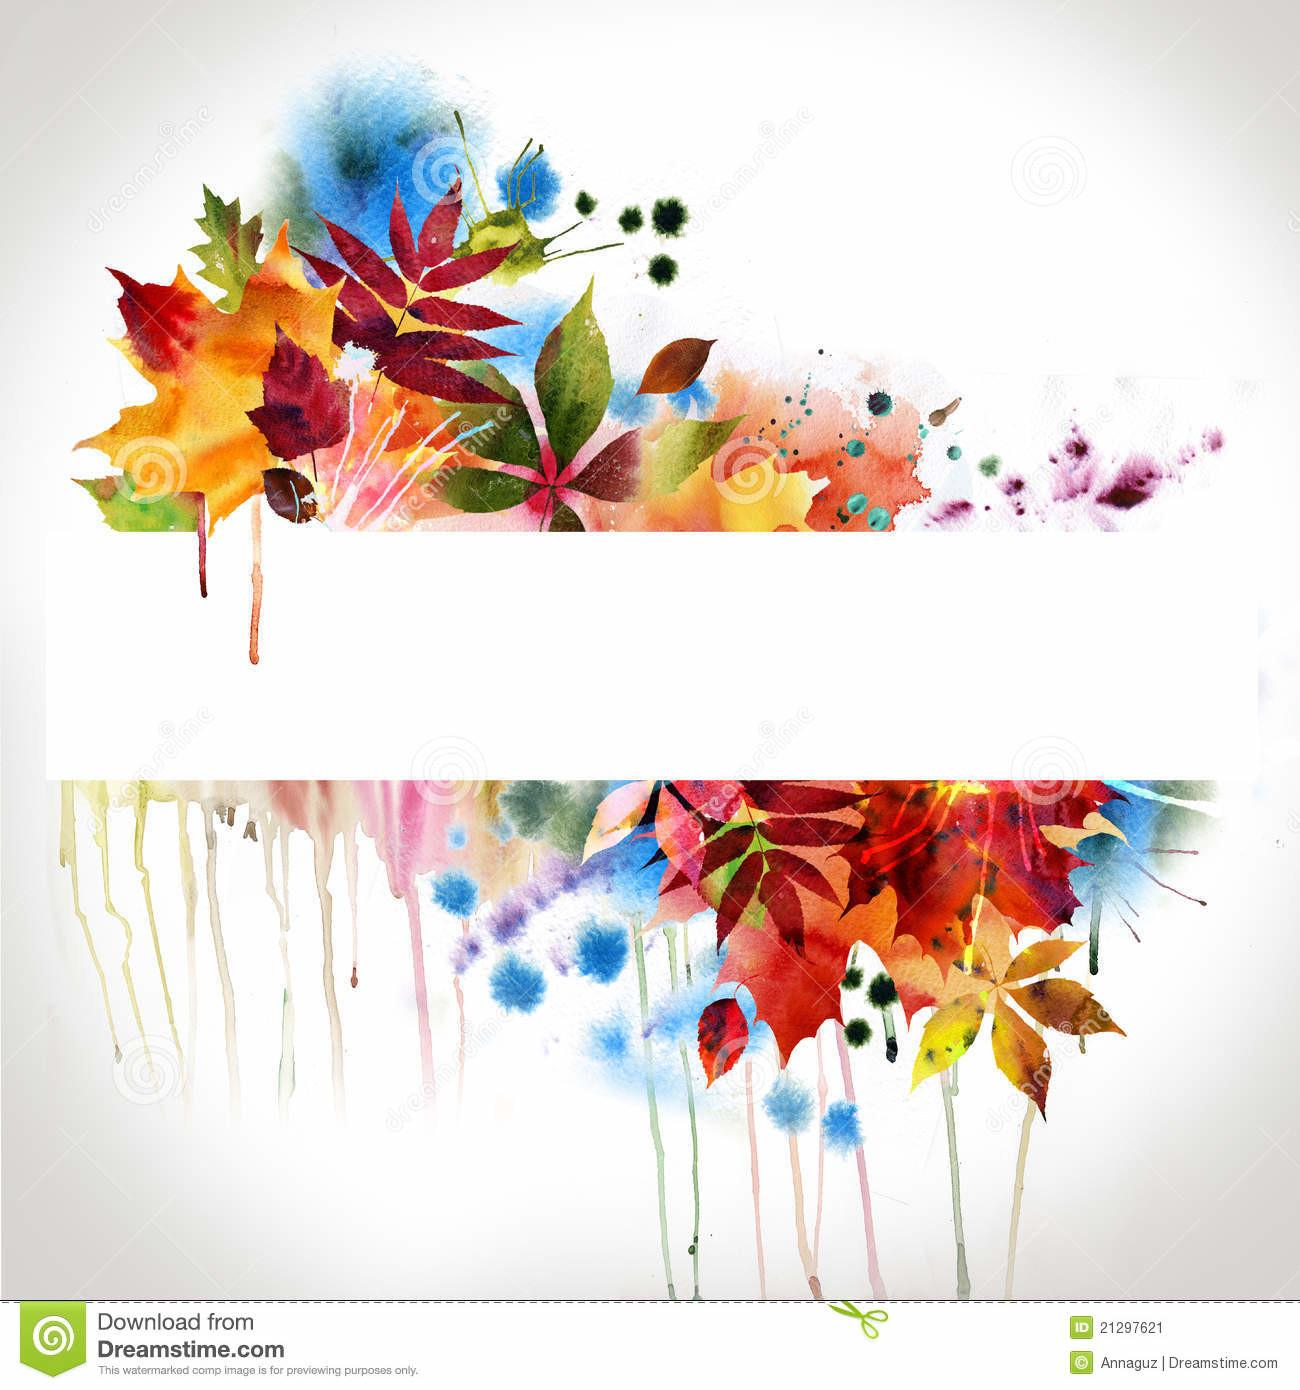 Floral Autumn Design Watercolor Painting Stock